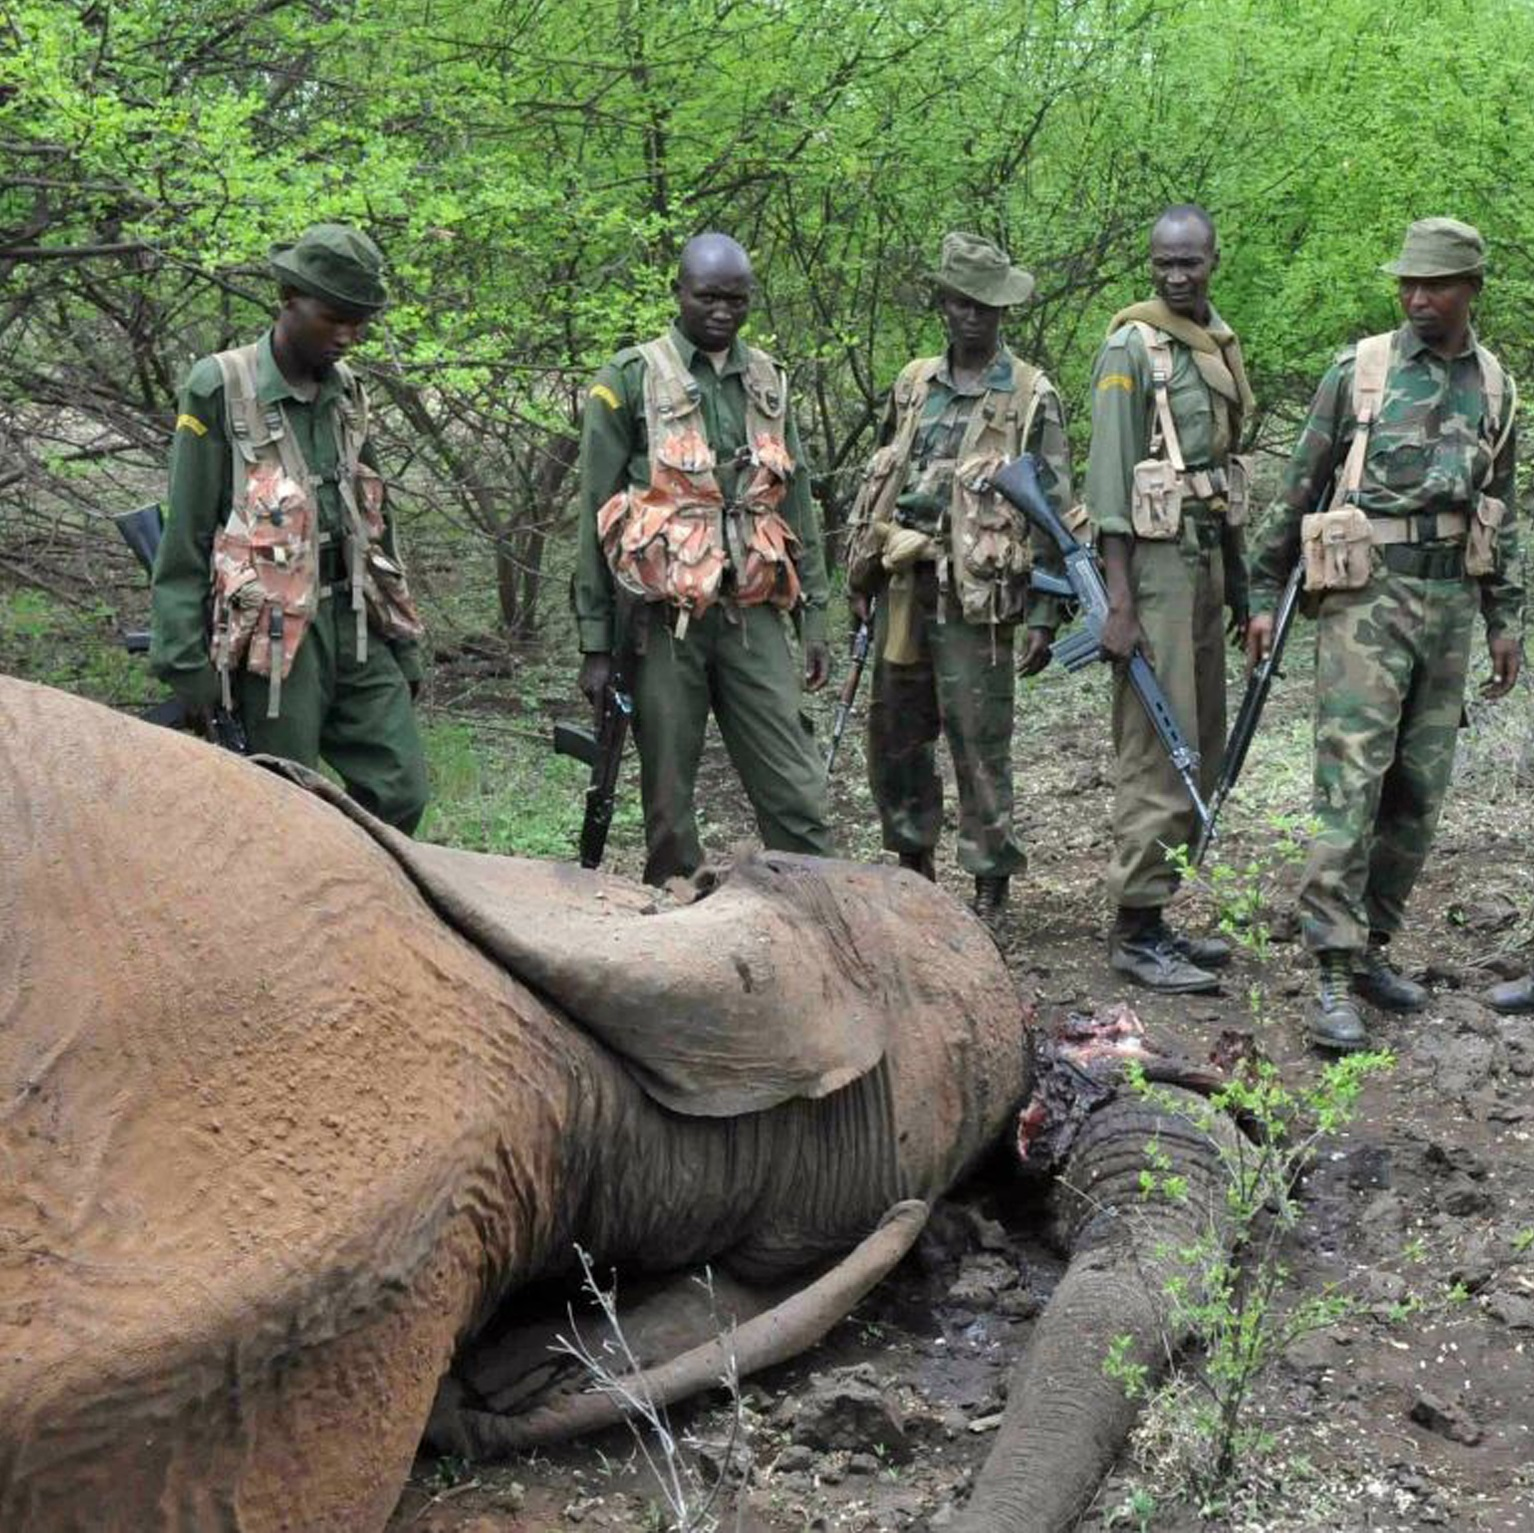 an analysis of the poaching and wildlife management in africa 1 section 1 key findings key finding 1 poaching in sub saharan africa was produced via the historical legacy of colonialism one of the legacies of colonialism was that legal rights to hunt were removed from africans.